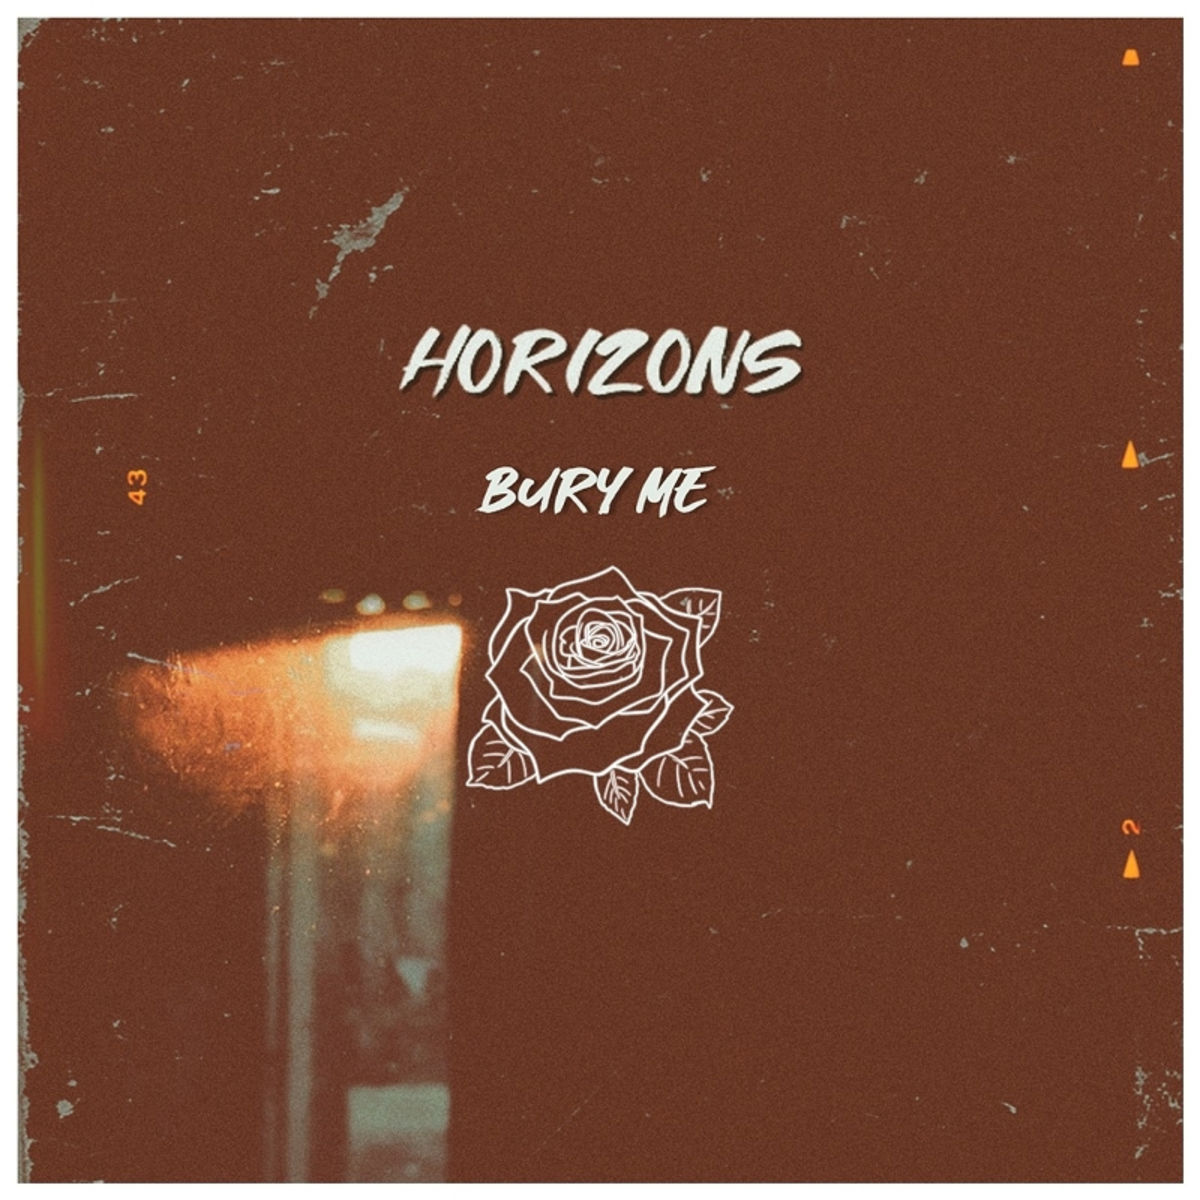 Horizons - Bury Me [single] (2020)